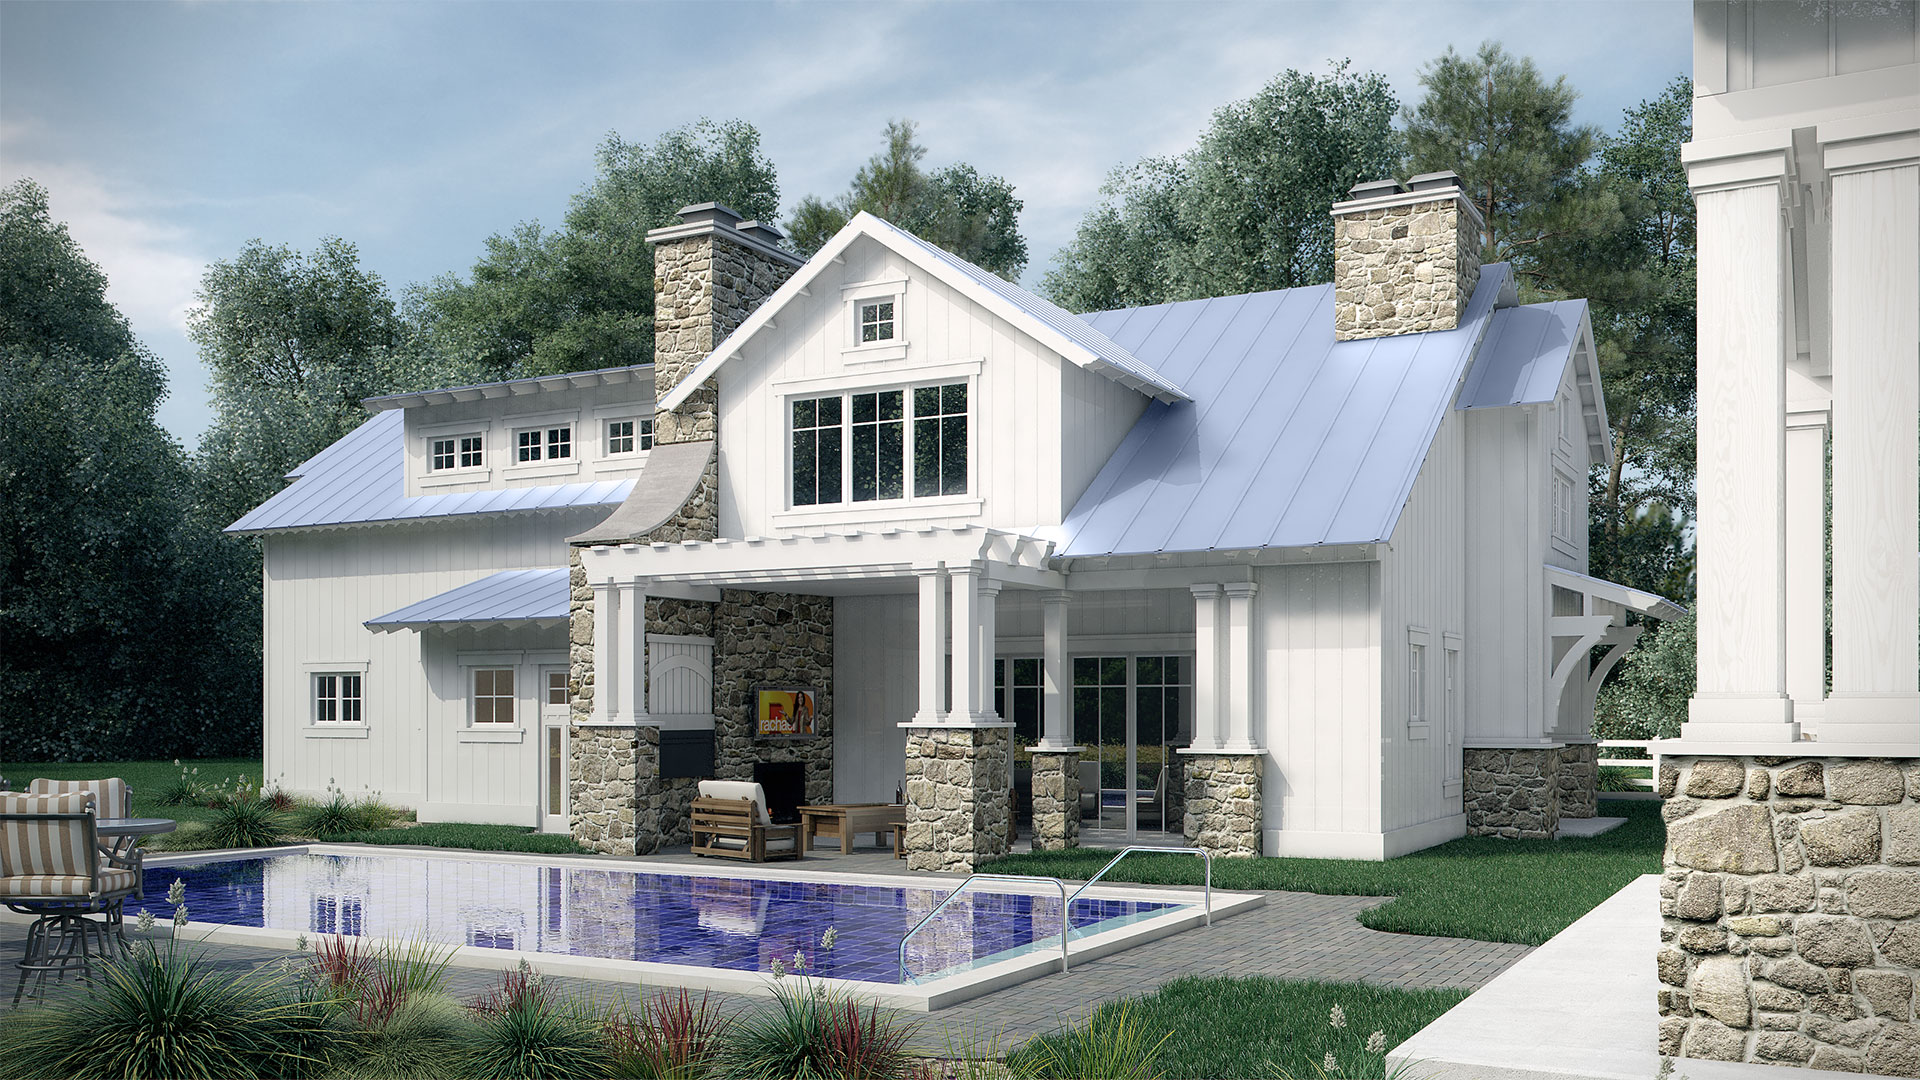 Pool side of the Carriage House Architectural Rendering